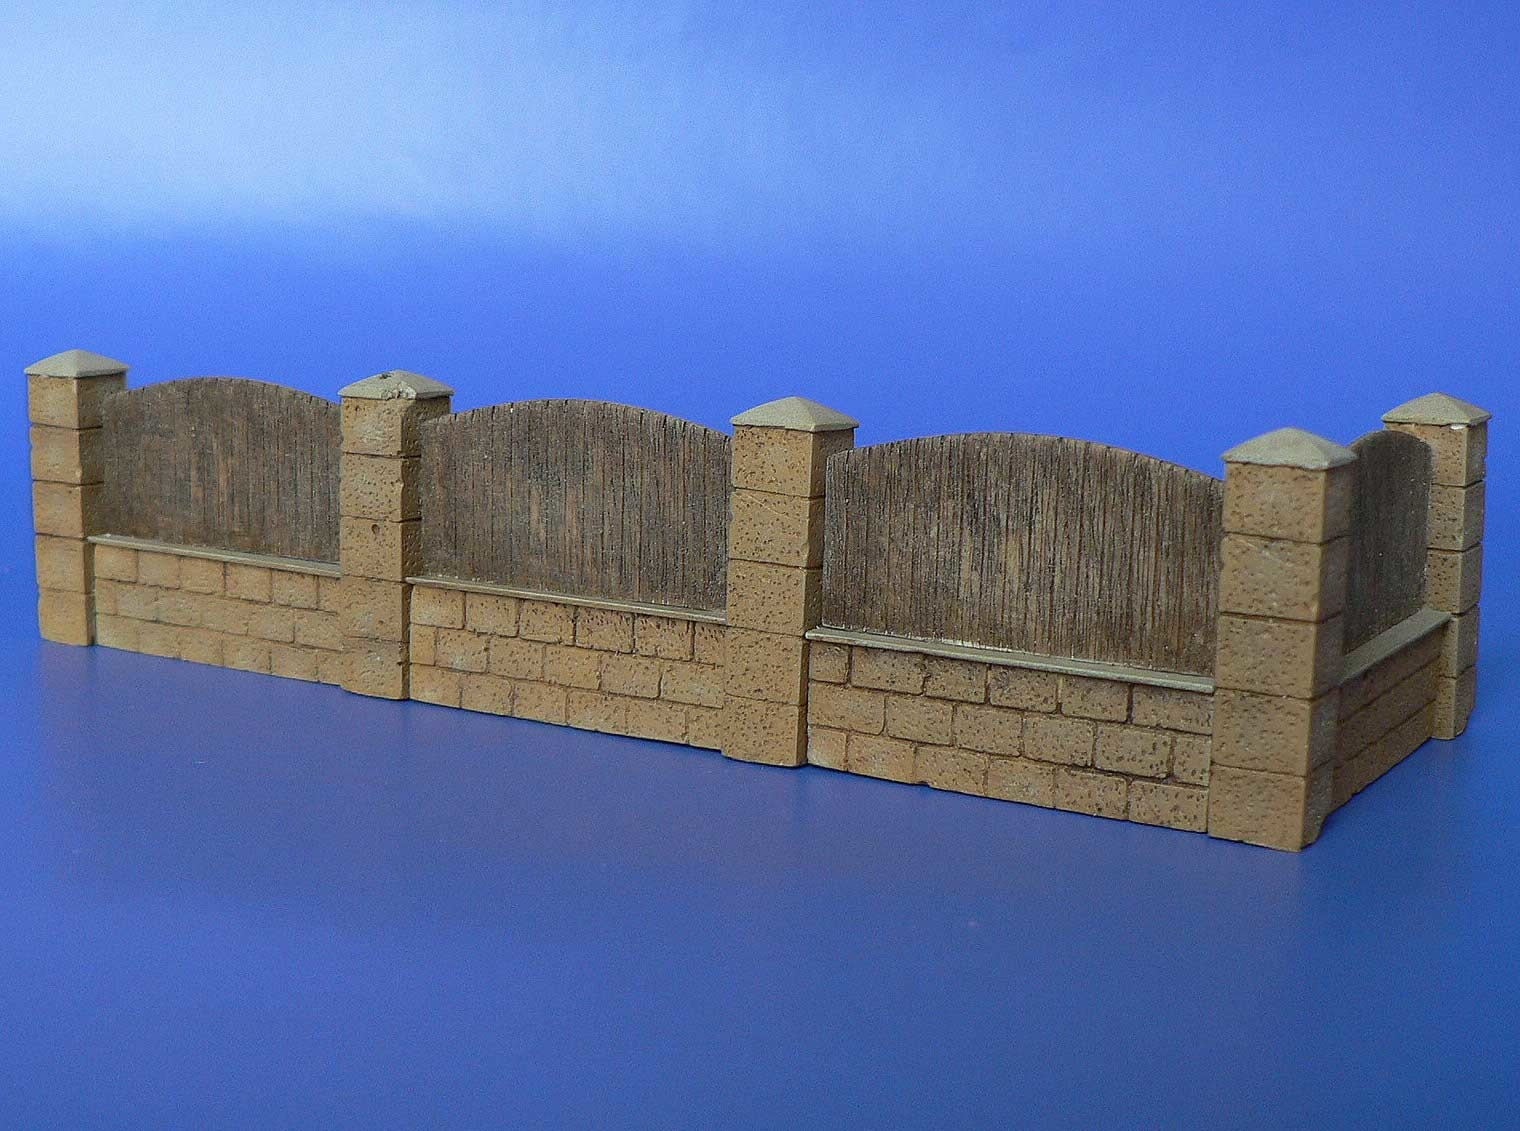 Minimali Productions Fence With Underpinning - Scale 1/72 - Minimali Productions - Mii 025